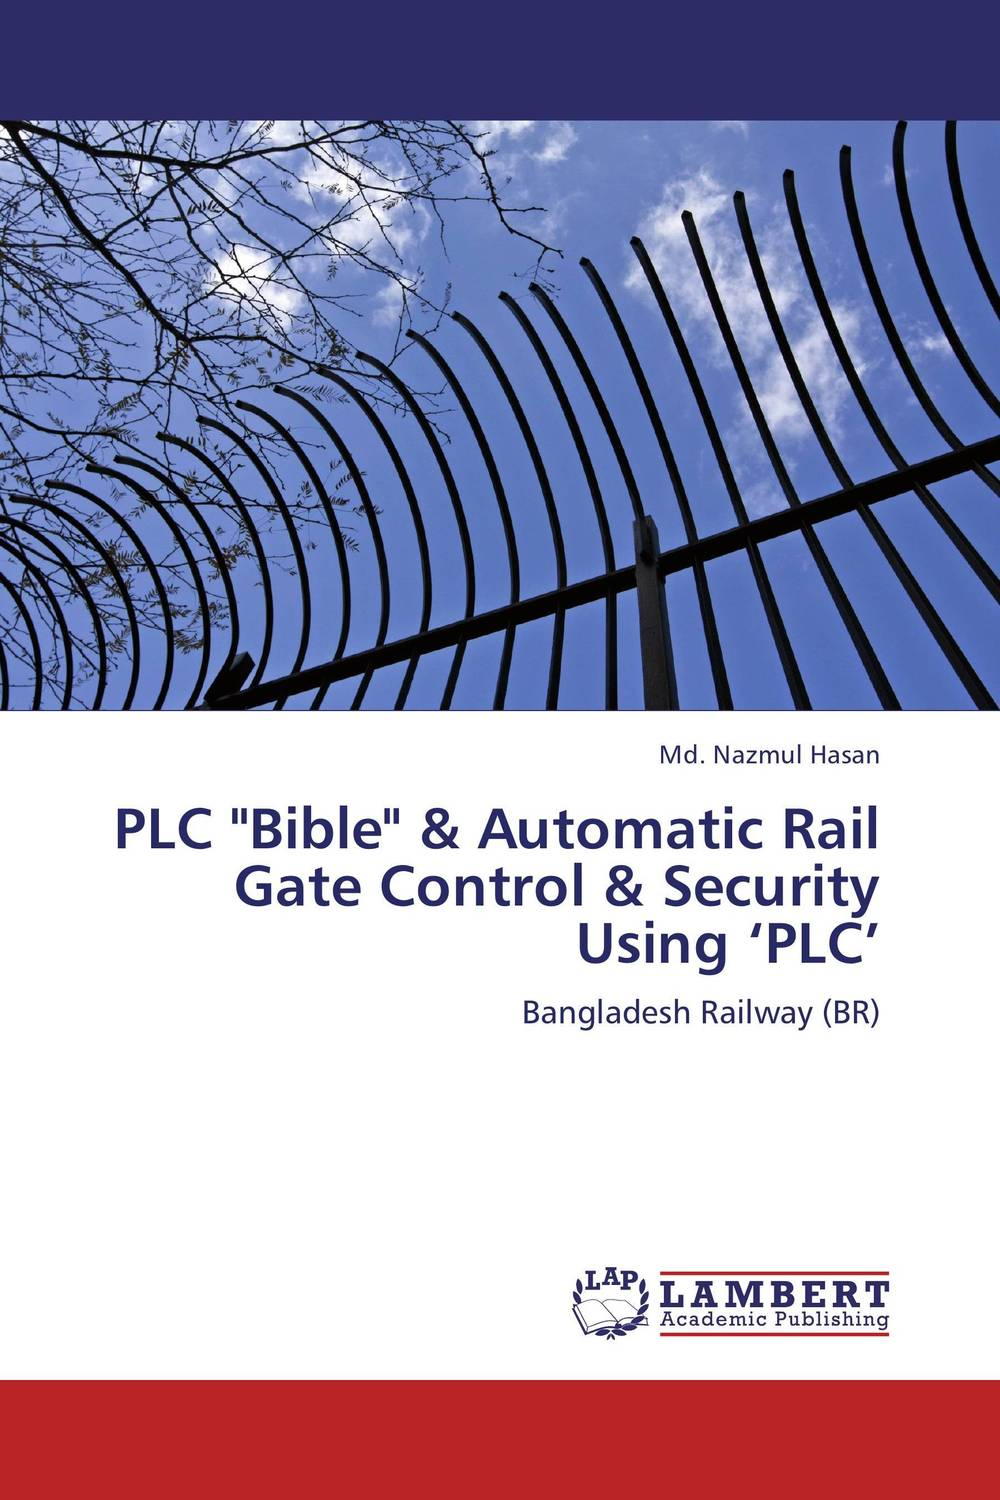 PLC Bible & Automatic Rail Gate Control & Security Using 'PLC' compatible bare lamp projector lamps 610 307 7925 poa lmp65 lmp65 for plc sl20 plc su50 plc su50s su51 xl20 su51 xu25a